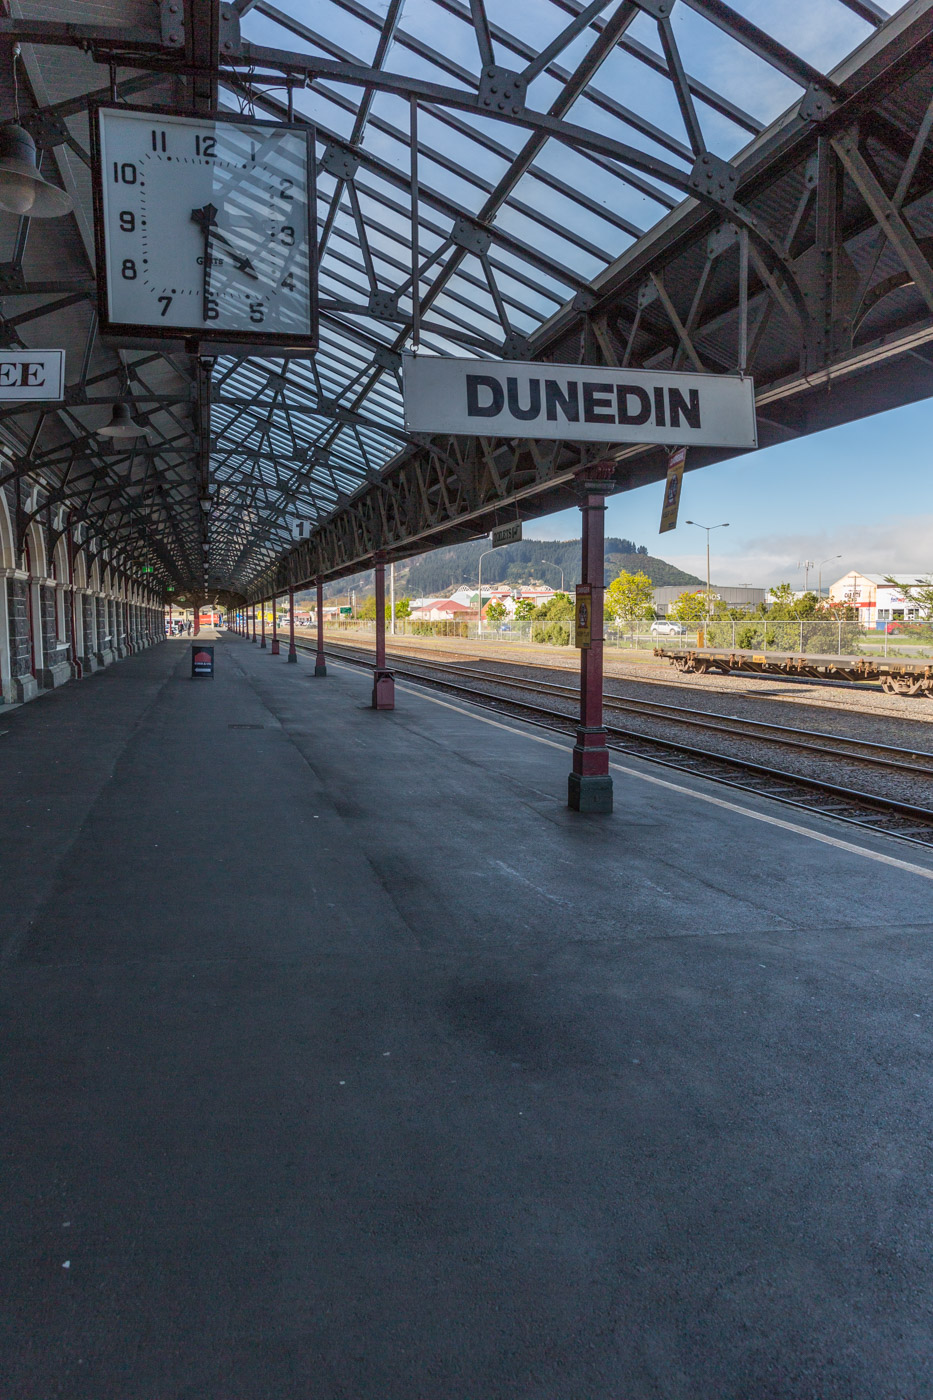 Dunedin Rail Station Platform, South Island, New Zealand